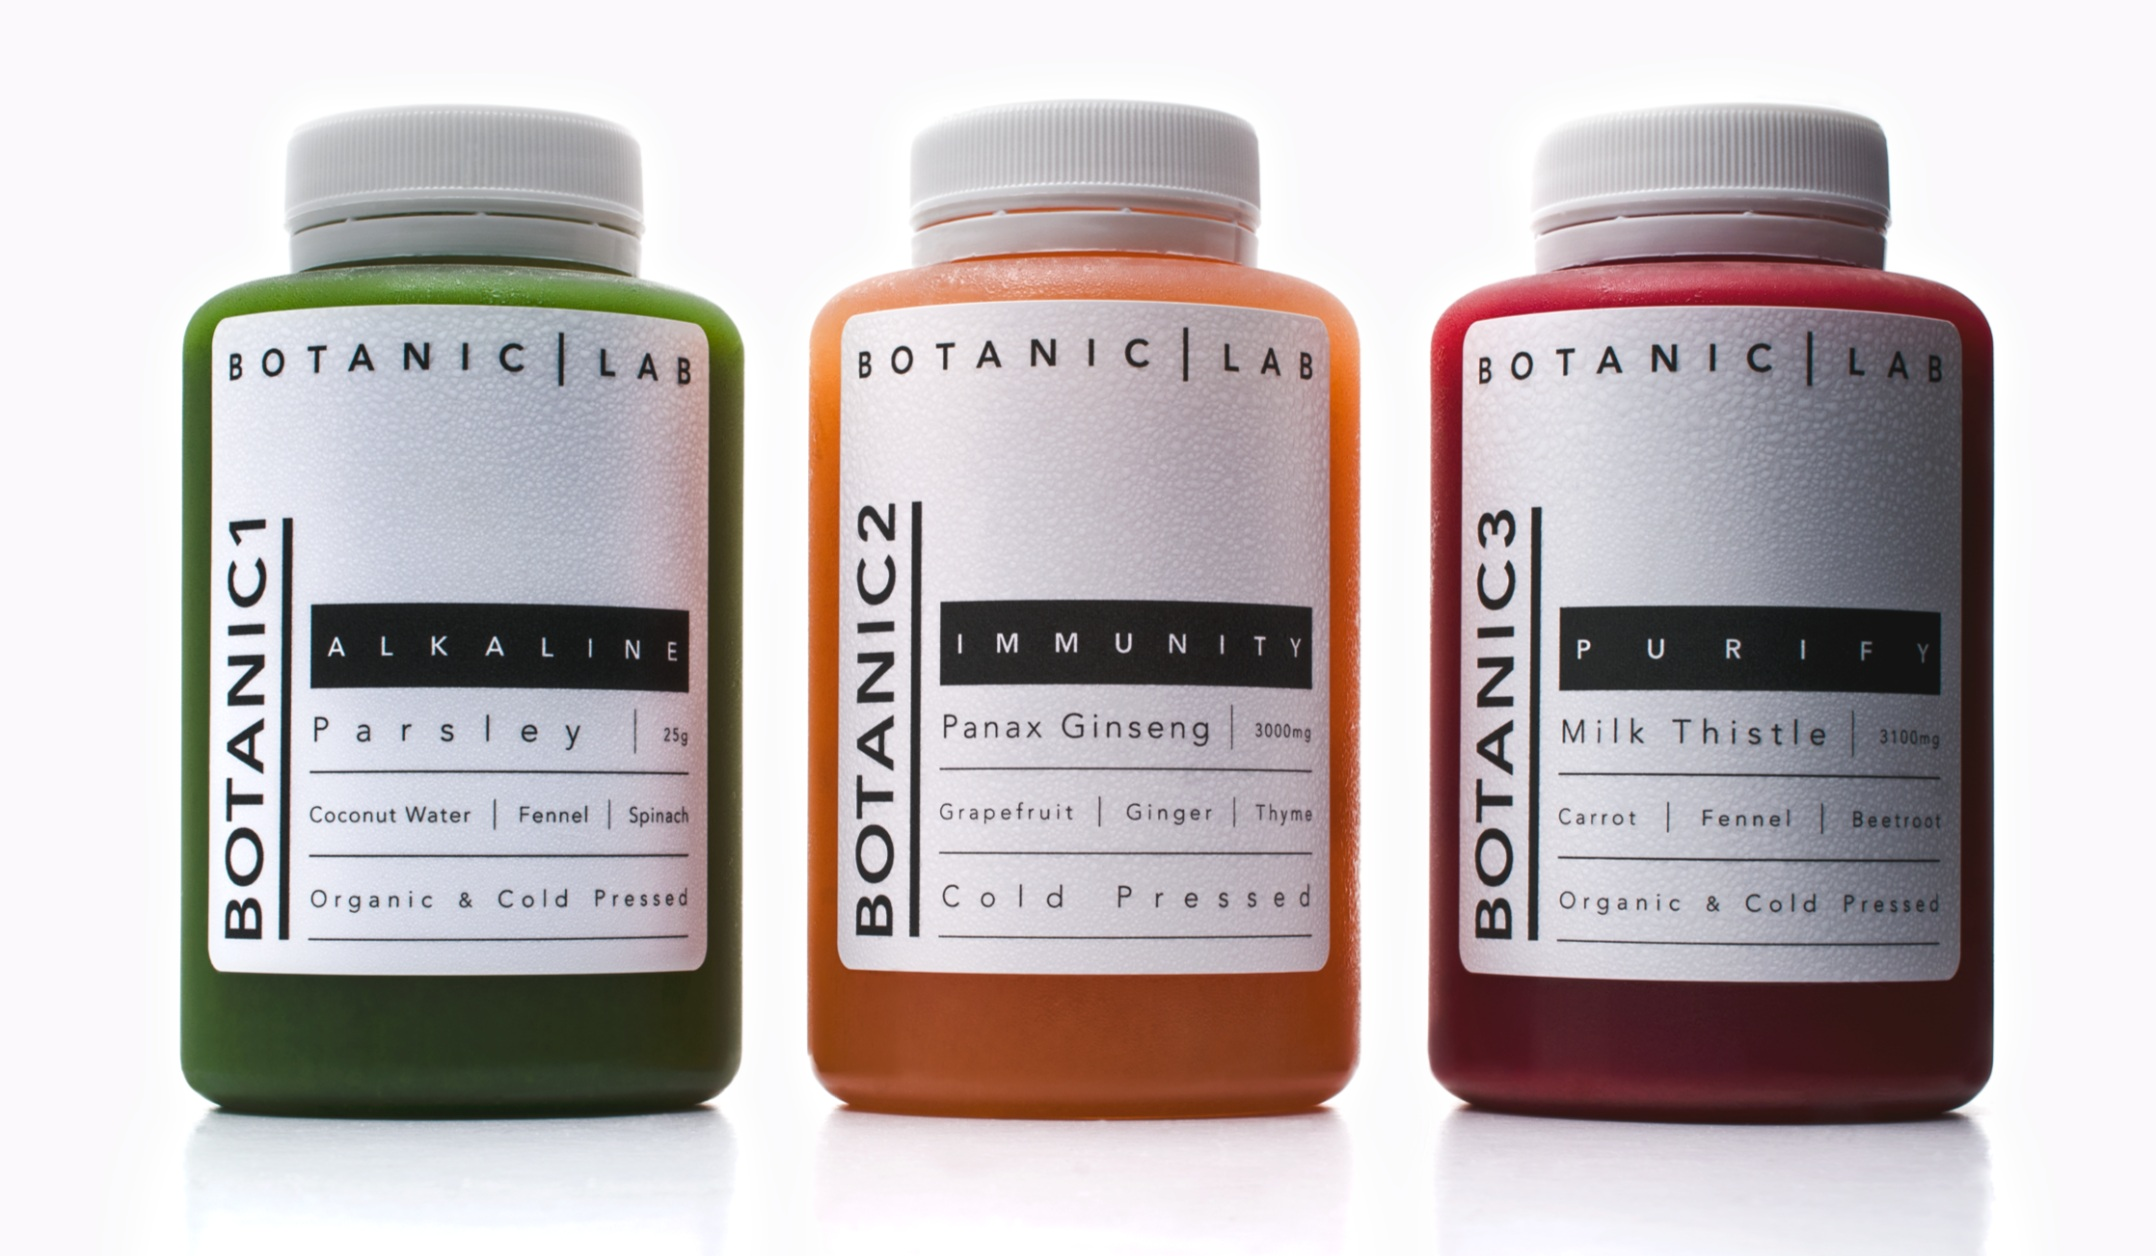 Creating a modern medicinal look for cold pressed plant potions with noticeable amounts of potent botanicals